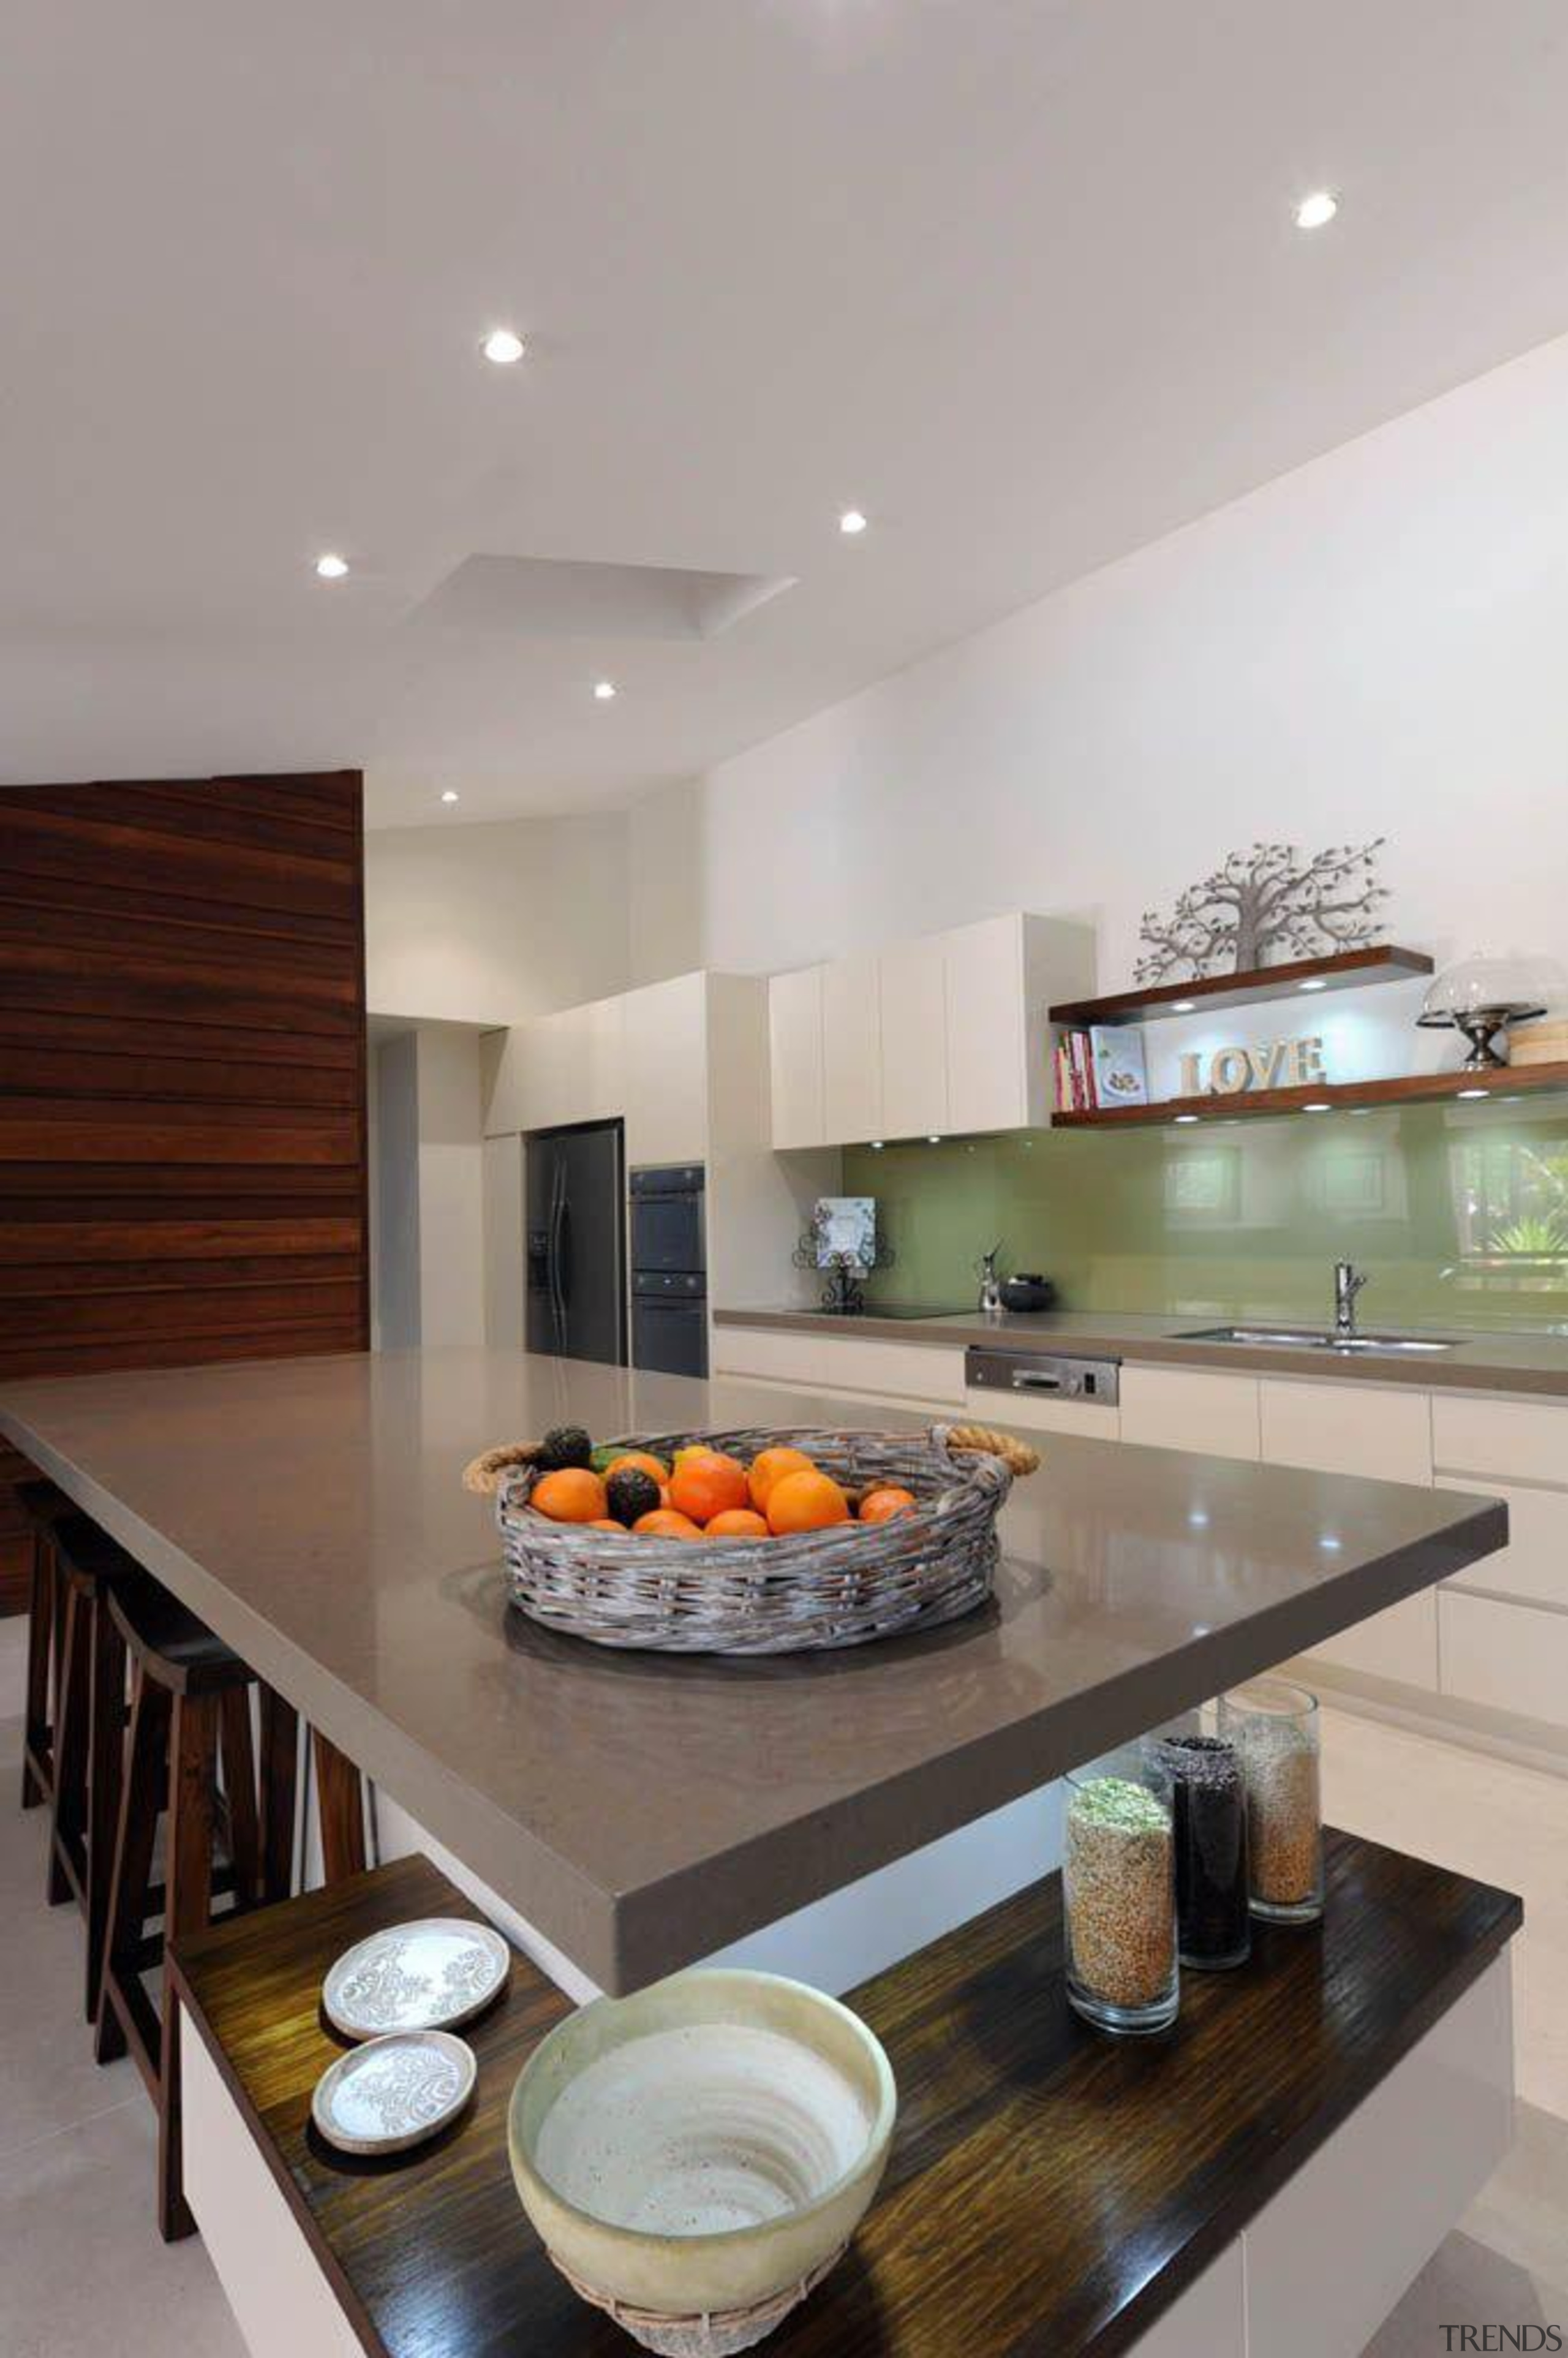 Seaside Cabinets Ginger - Ginger™ - ceiling | ceiling, countertop, interior design, kitchen, gray